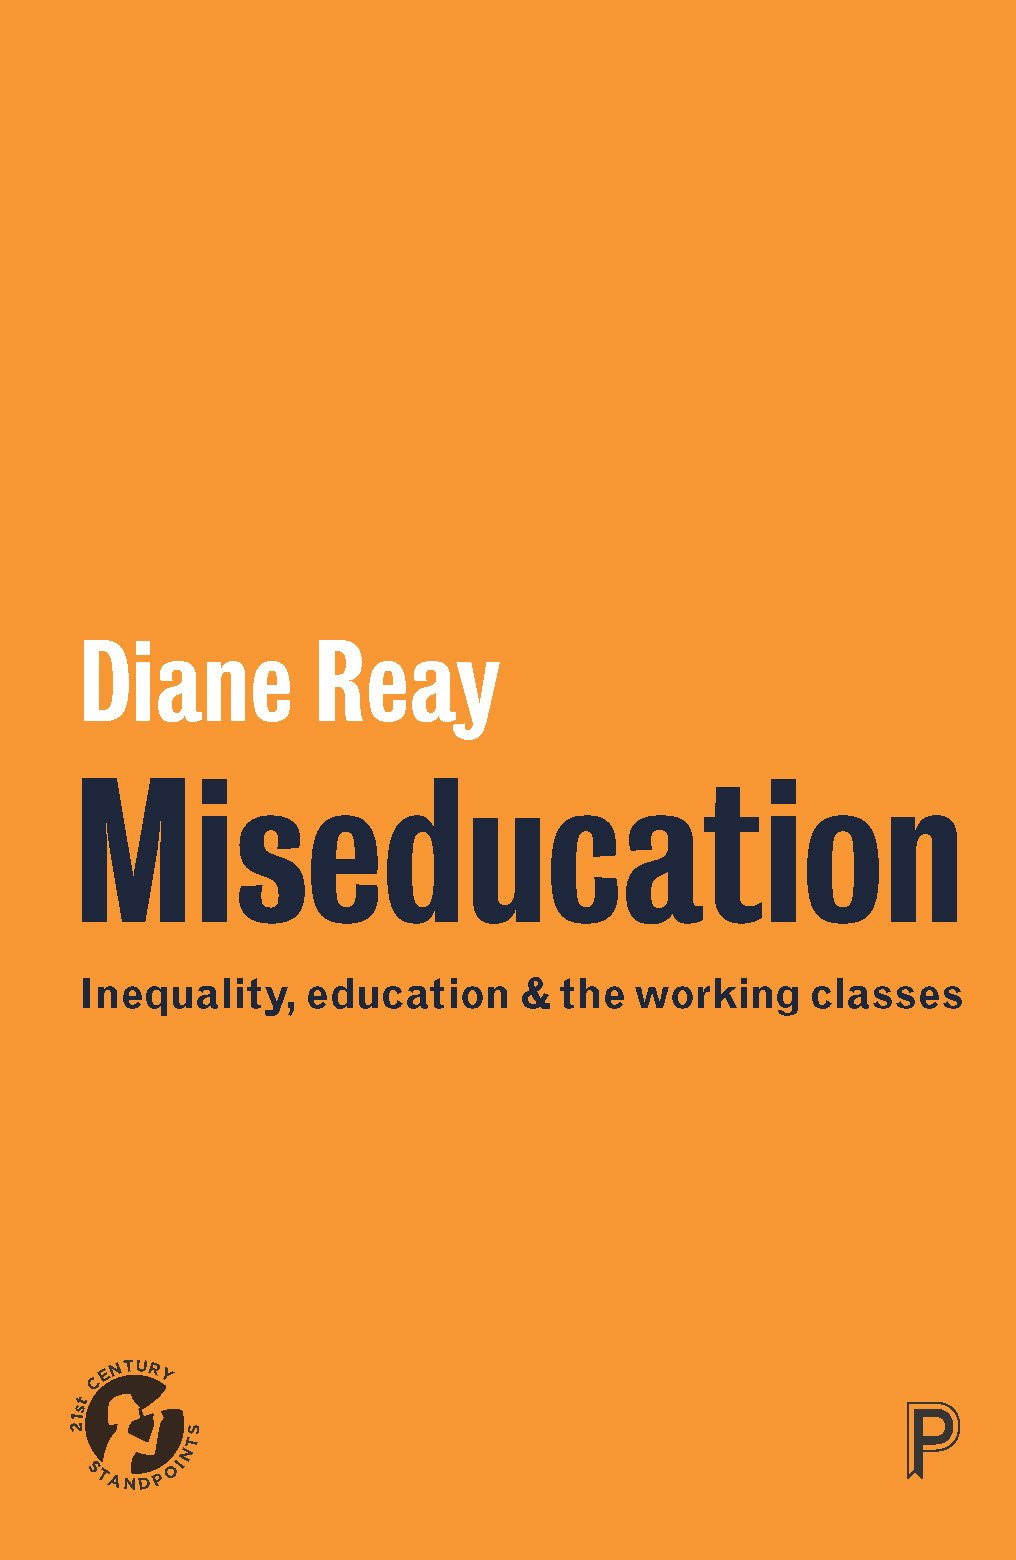 Book cover of Miseducation: Inequality, Education and the Working Classes by Diane Reay